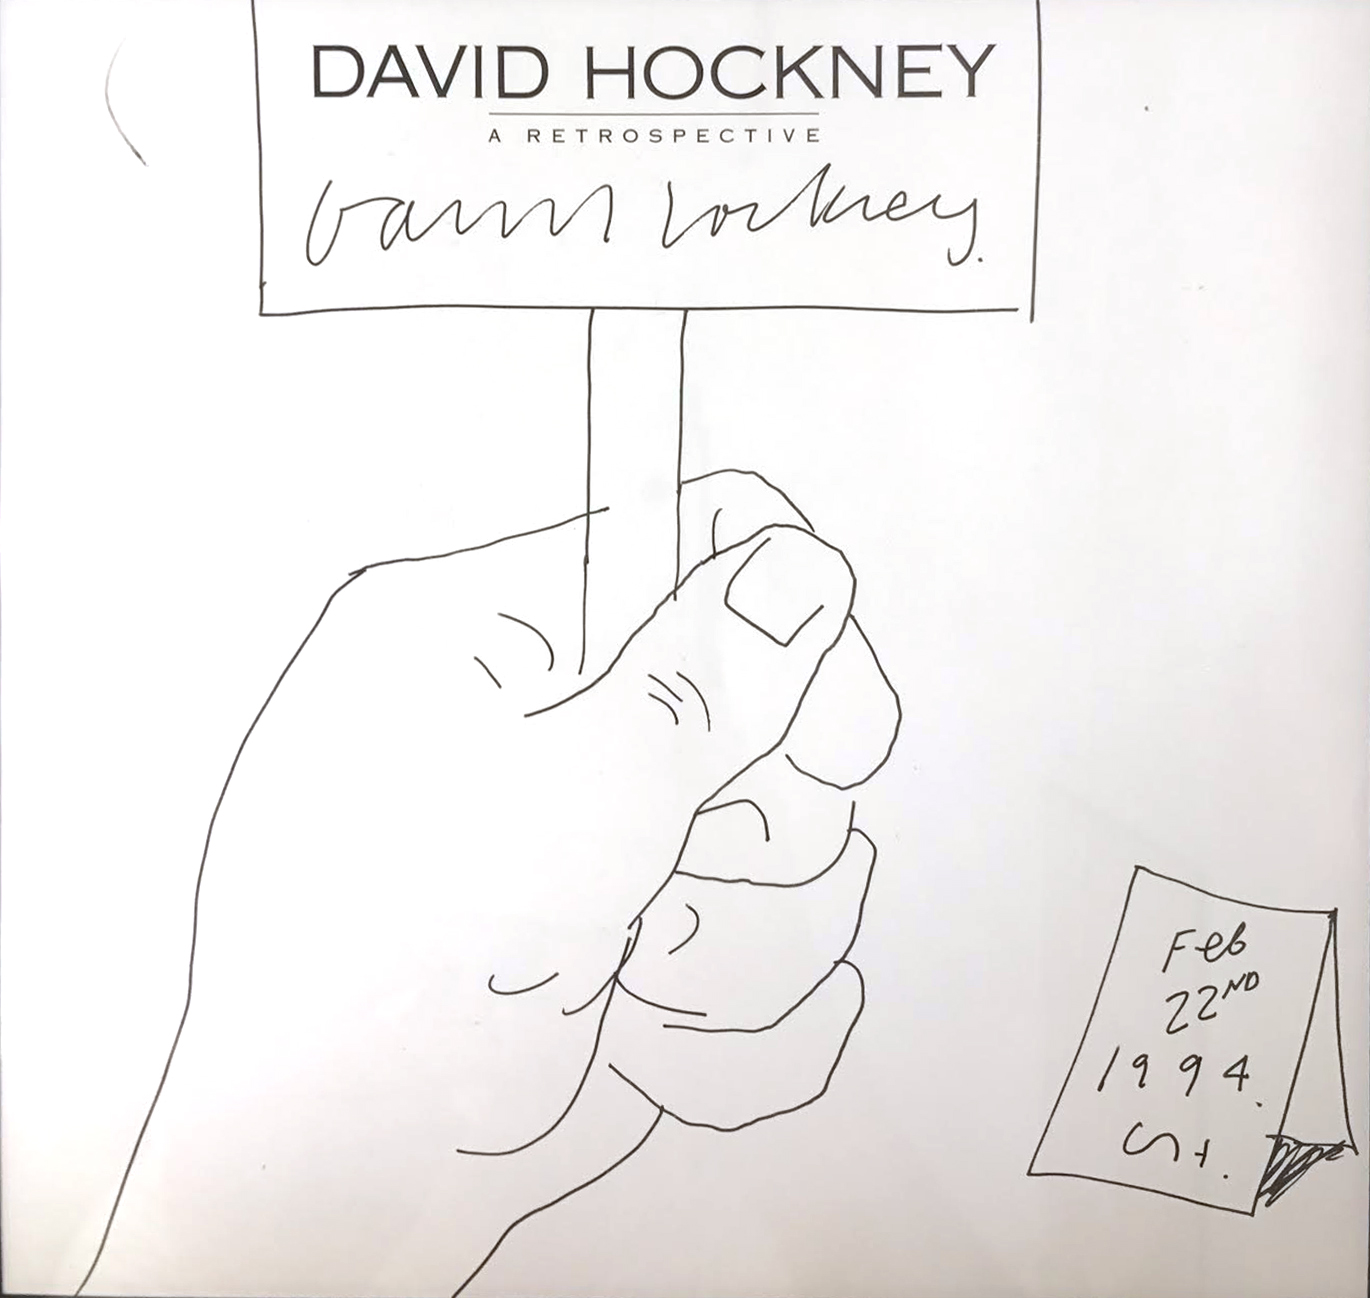 """David Hockney, Untitled, 1988, ink on paper, 38"""" x 21"""", courtesy of private collector"""